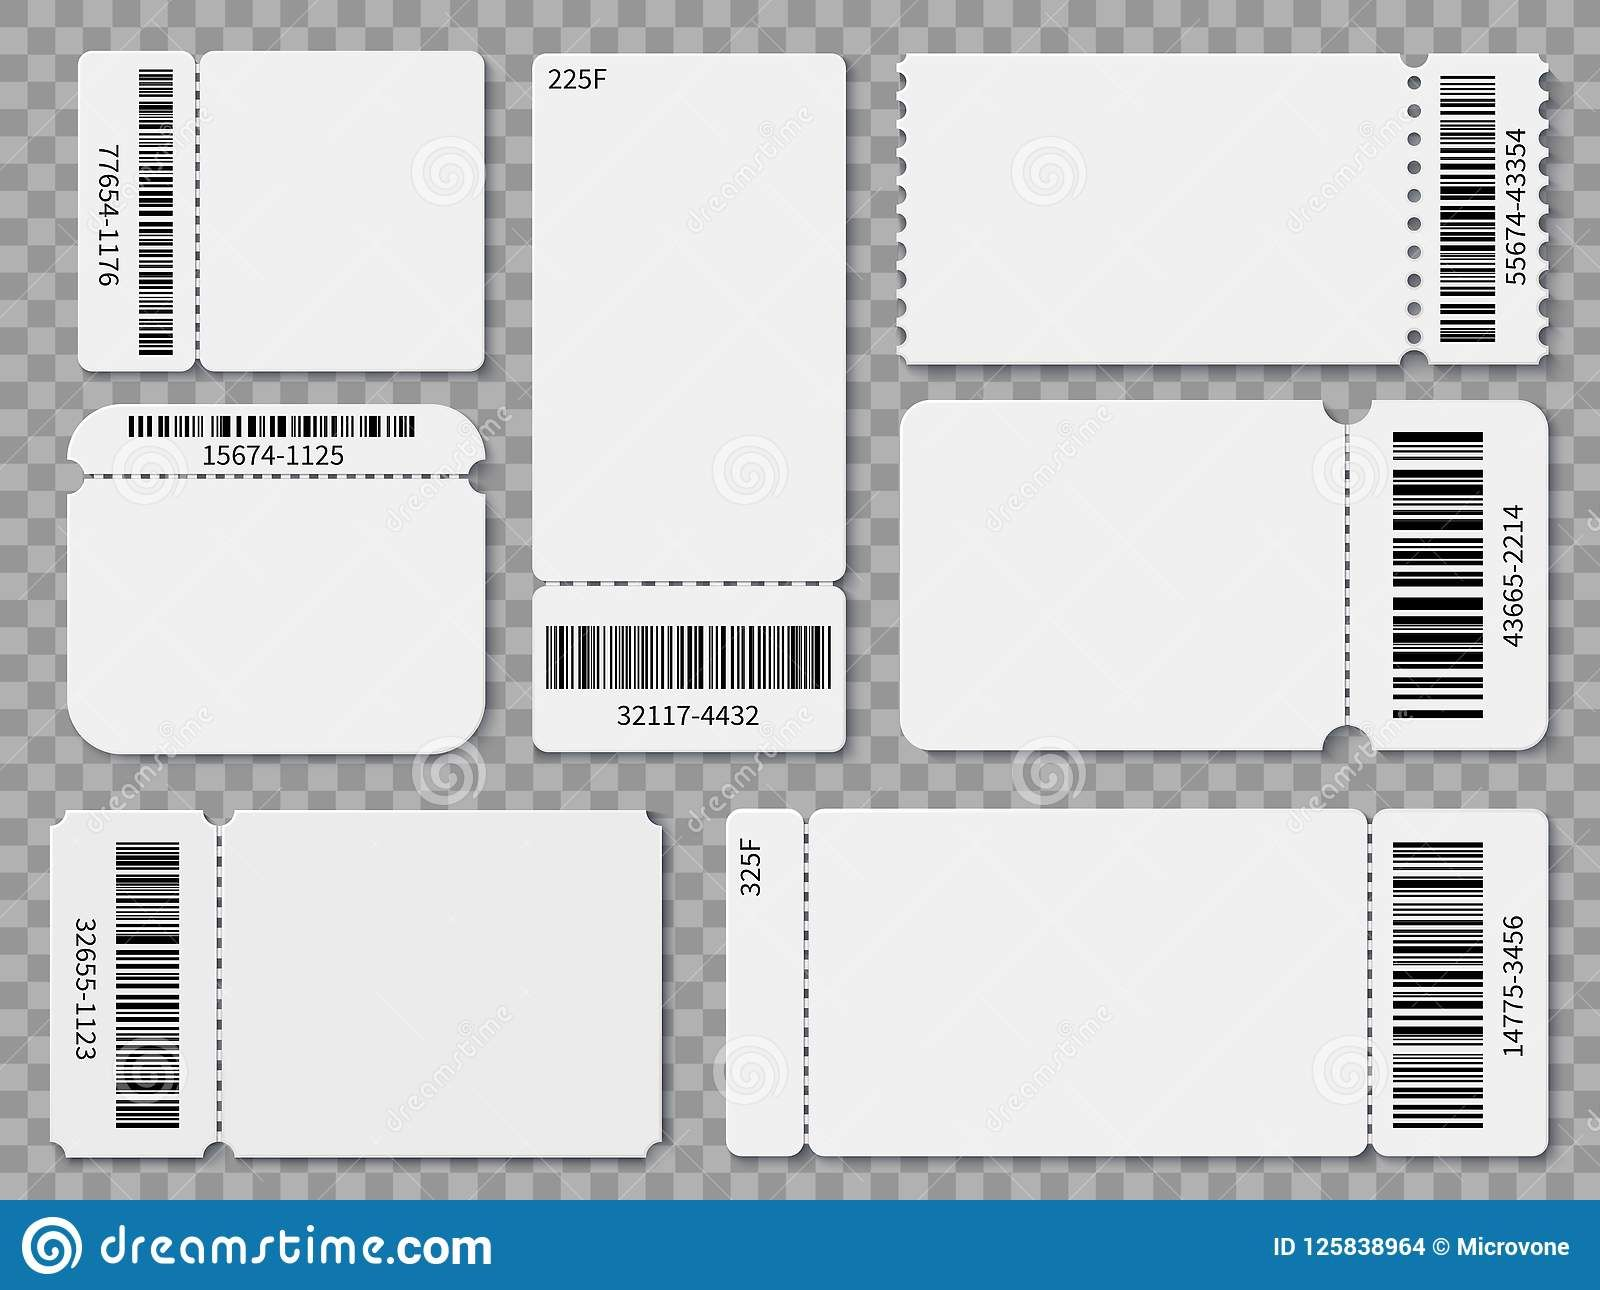 Ticket Templates Blank Admit One Festival Concert Theater Inside Blank Admission Ticket Design Template Raffle Ticket Template Free Ticket Template Printable Printable event ticket template free